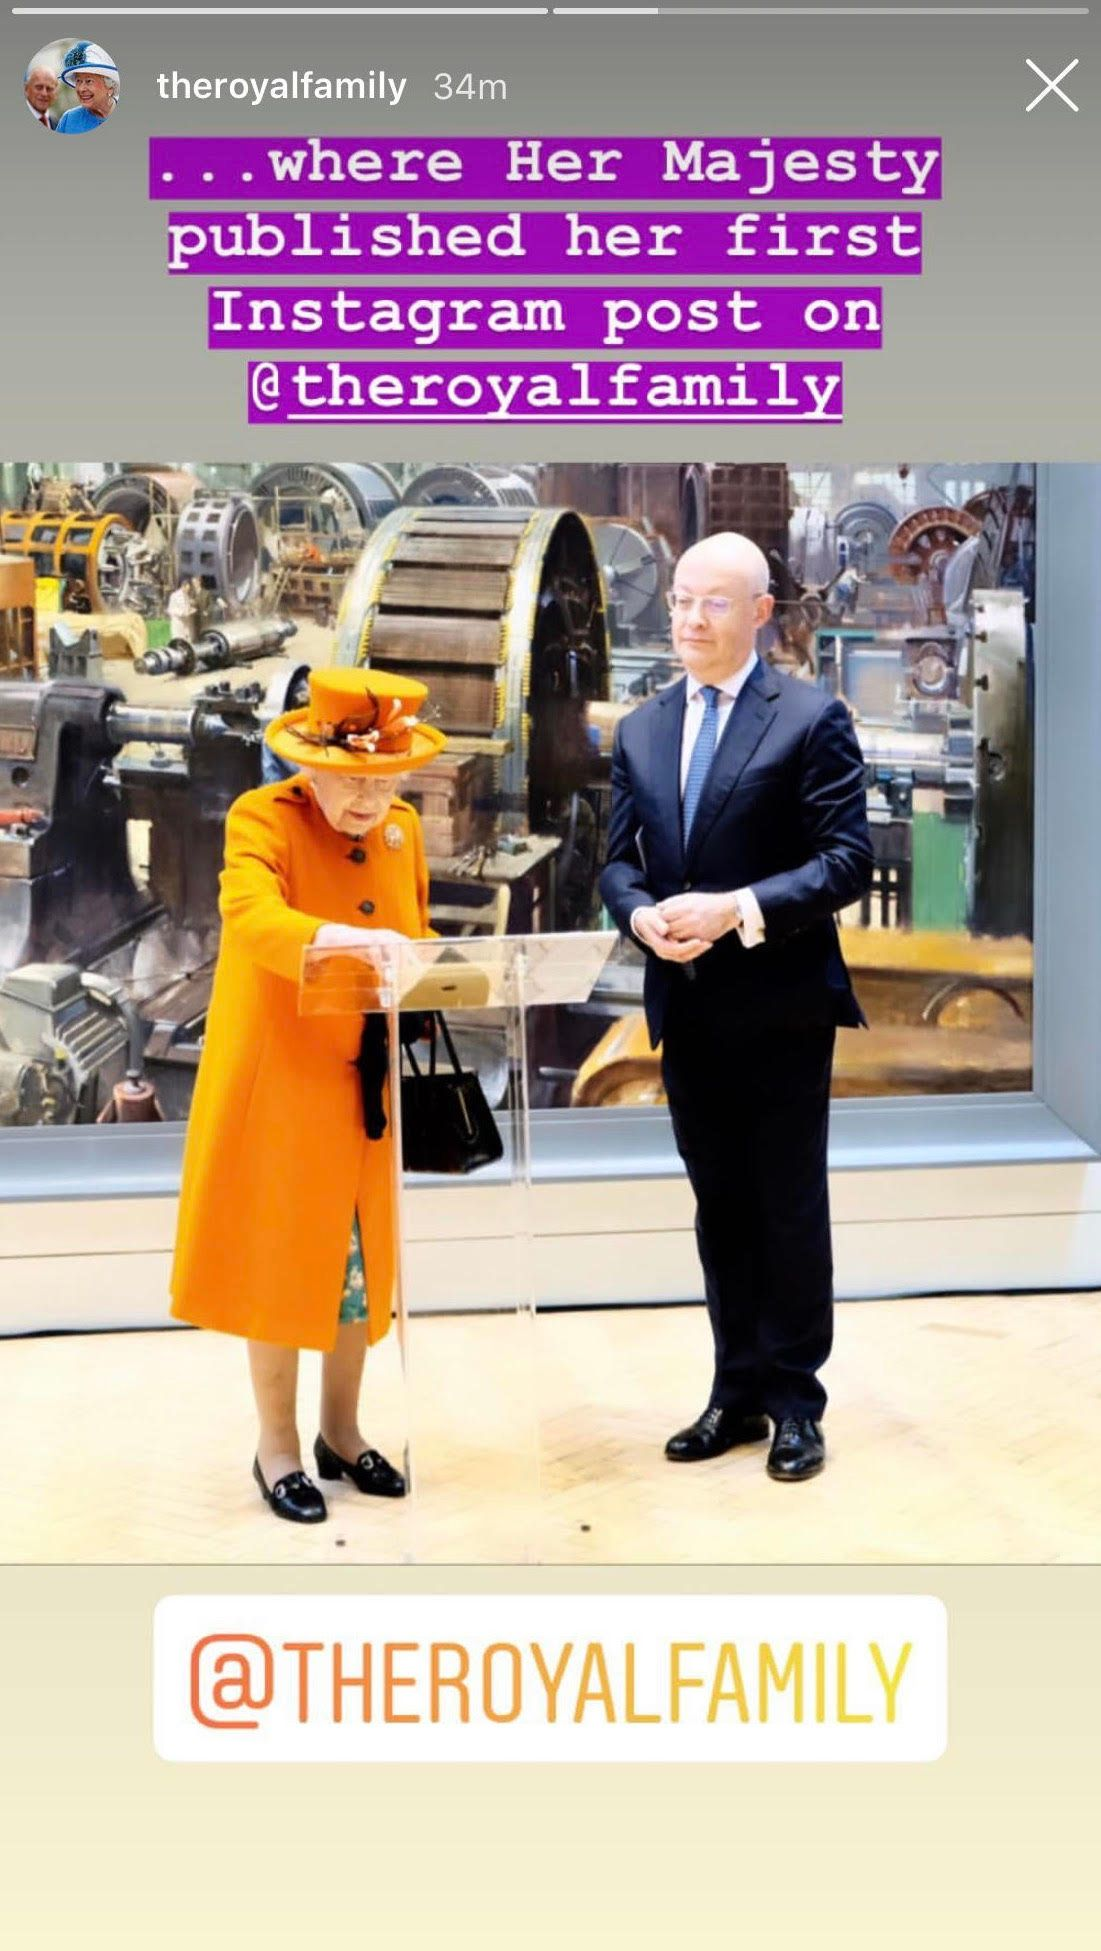 Queen Elizabeth II Shares First Instagram Post, And It's A